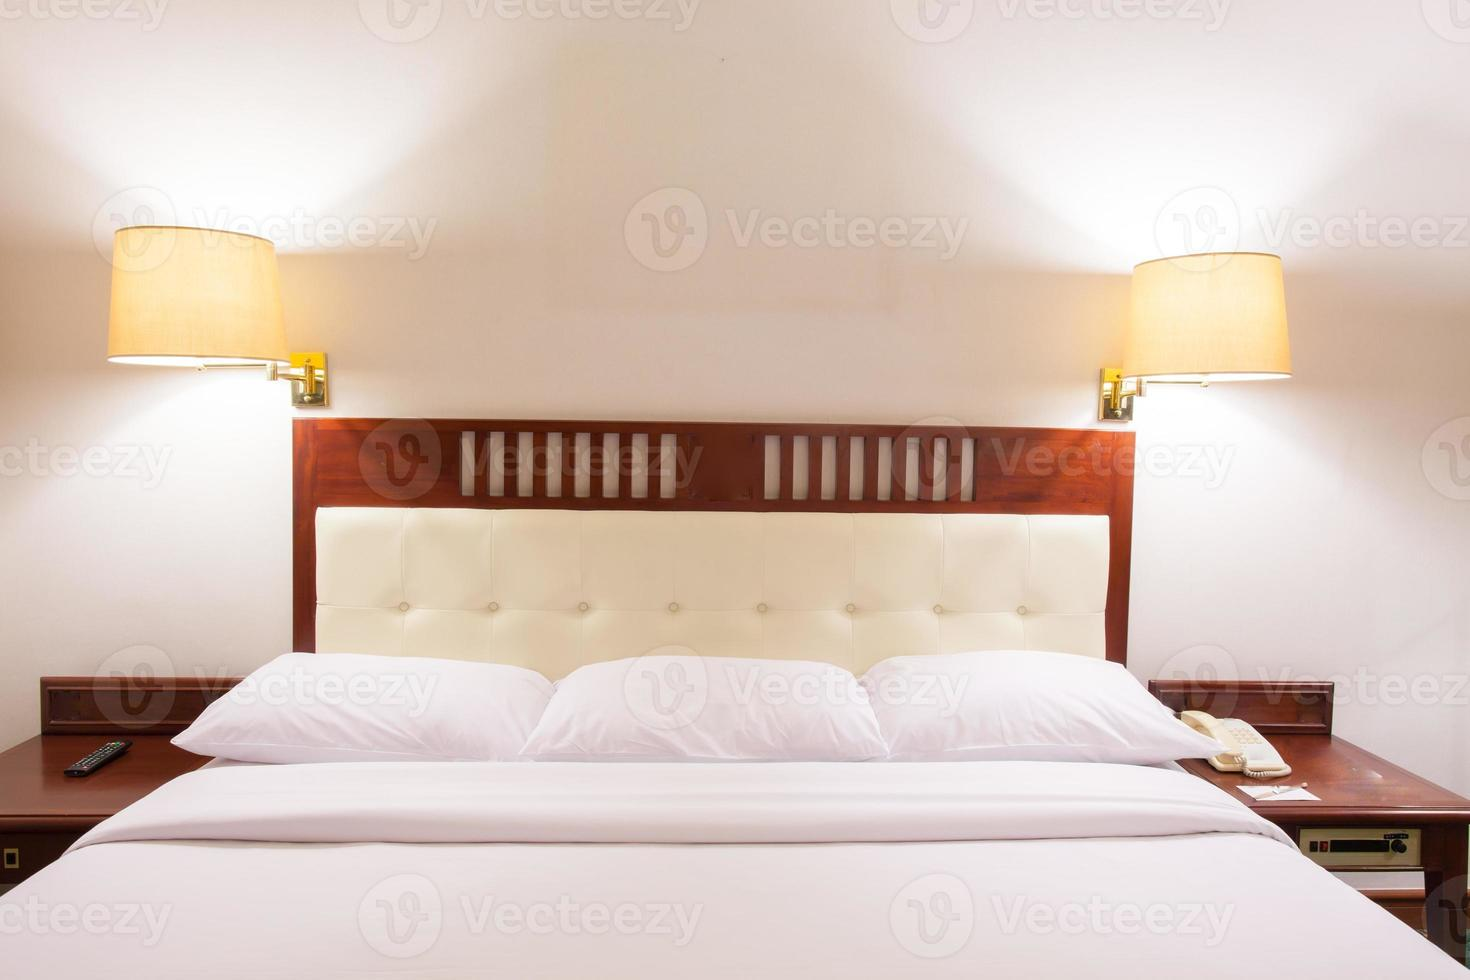 Hotel bed with bed lamps photo